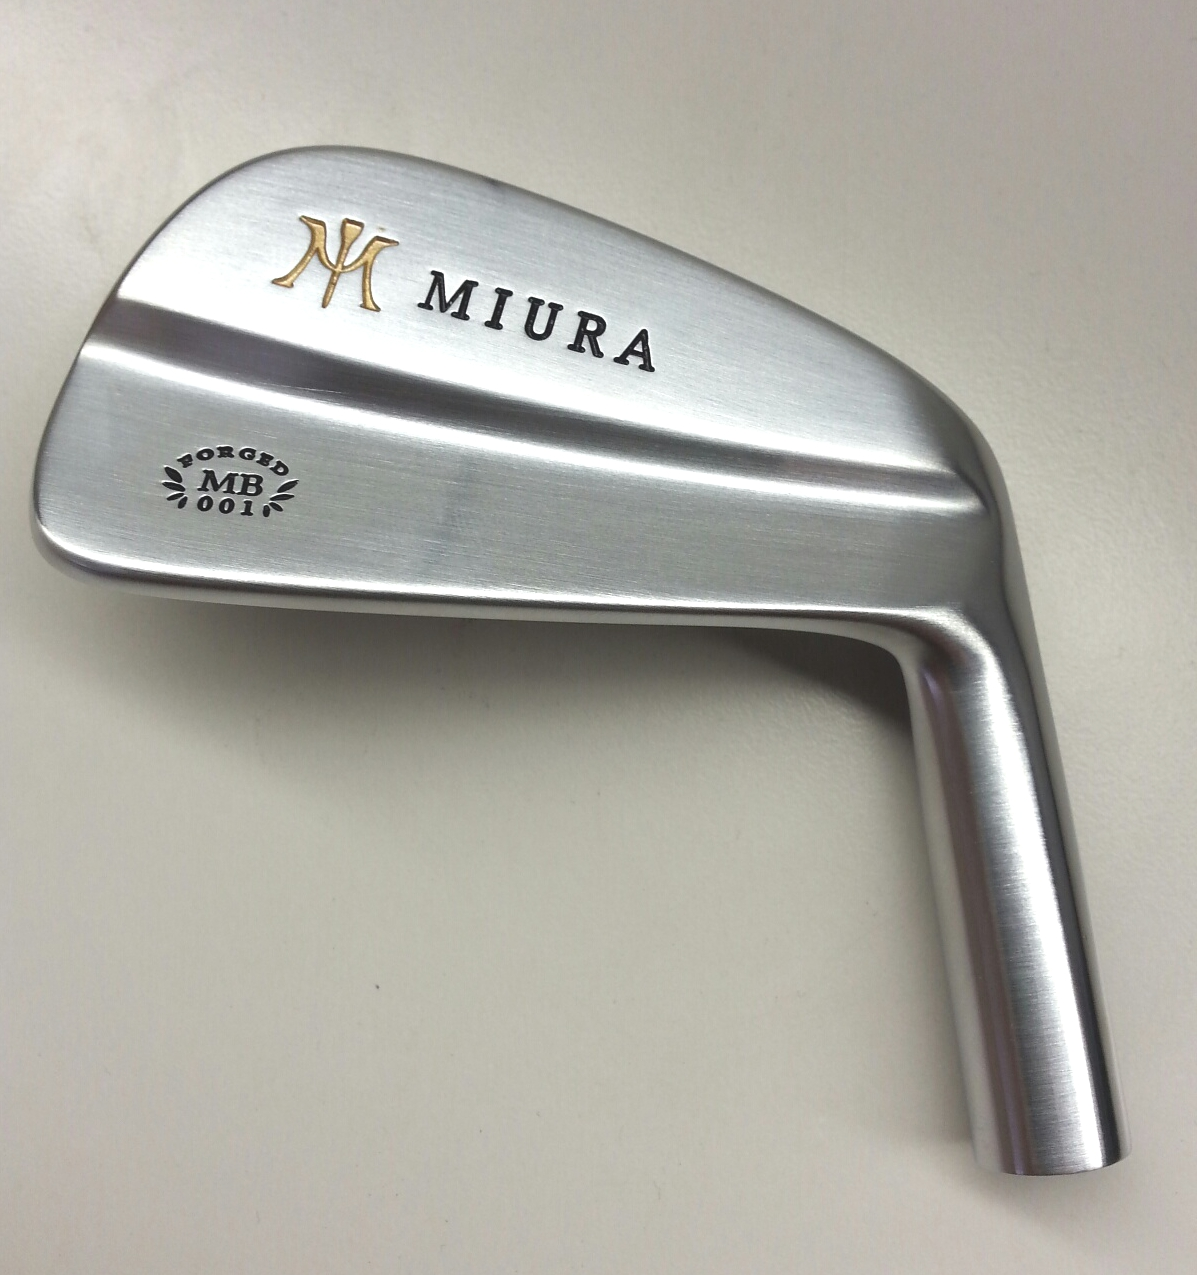 New Miura Mb 001 Blades Available Soon At Fairwaygolfusa Com